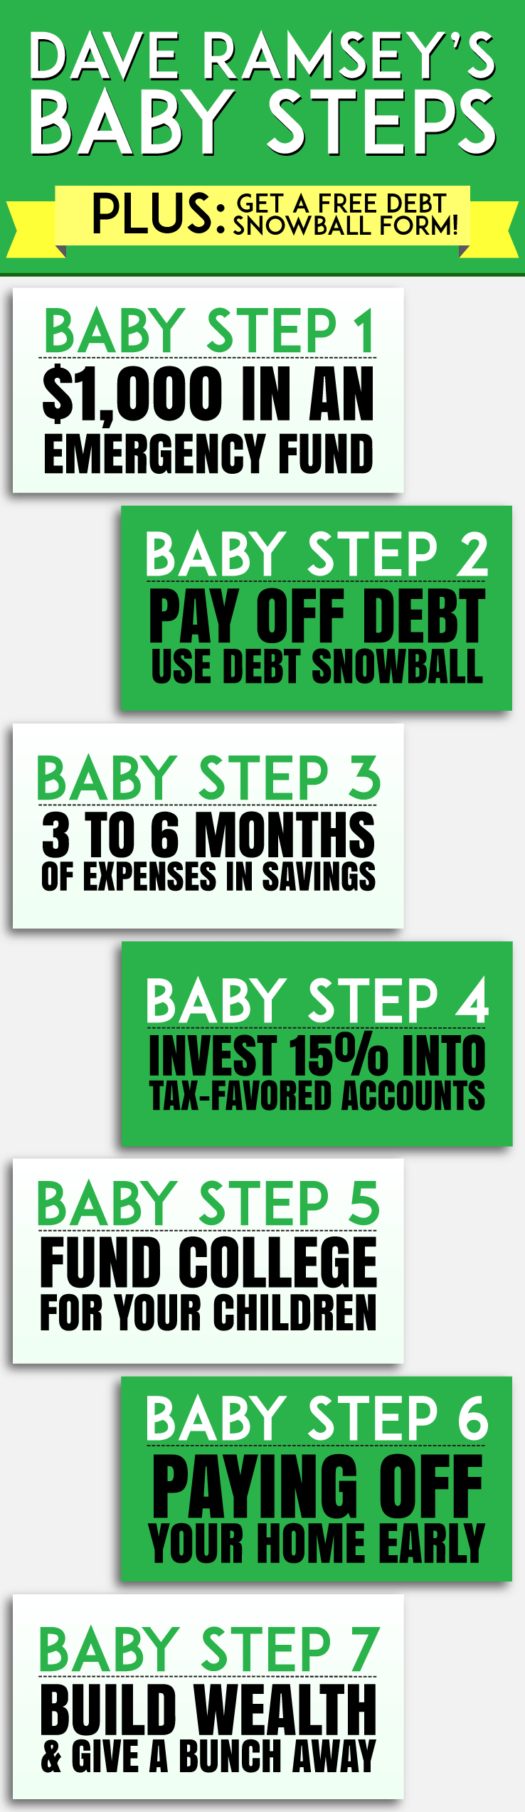 Dave Ramsey's Baby Steps and Why They Work 2020 Update